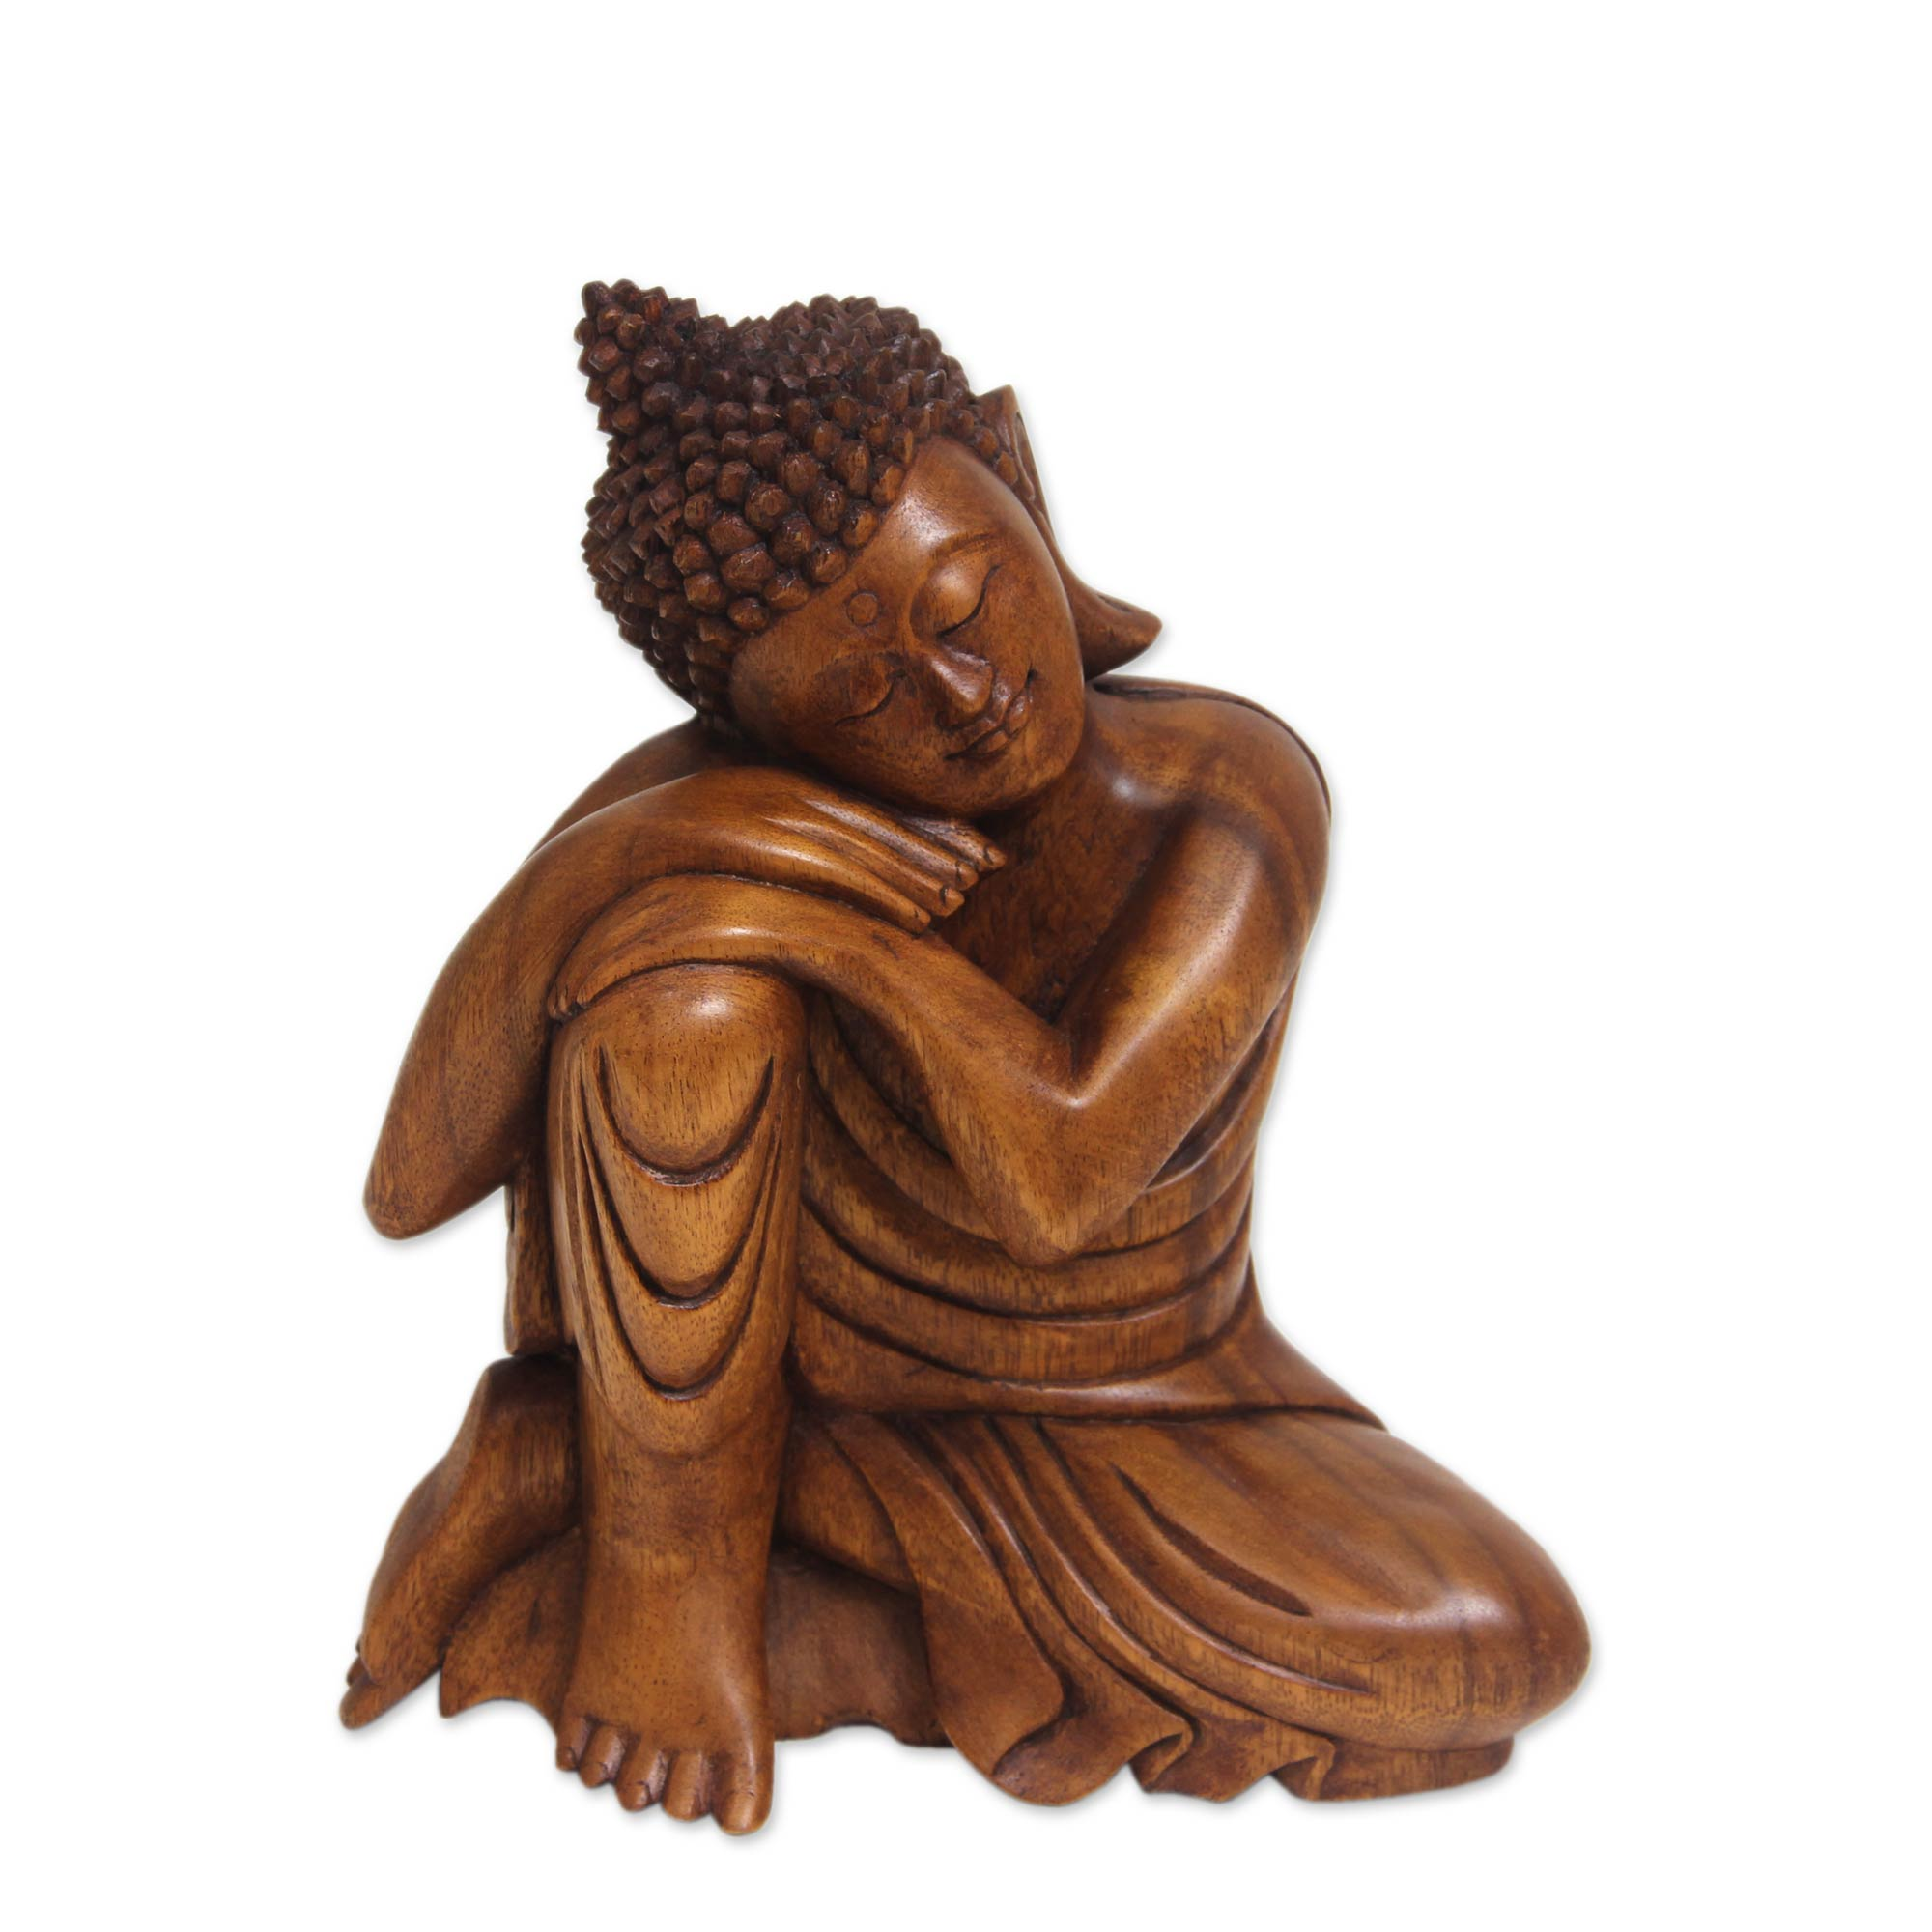 Balinese Hand Carved Wood Buddha Statuette, Relaxing Buddha